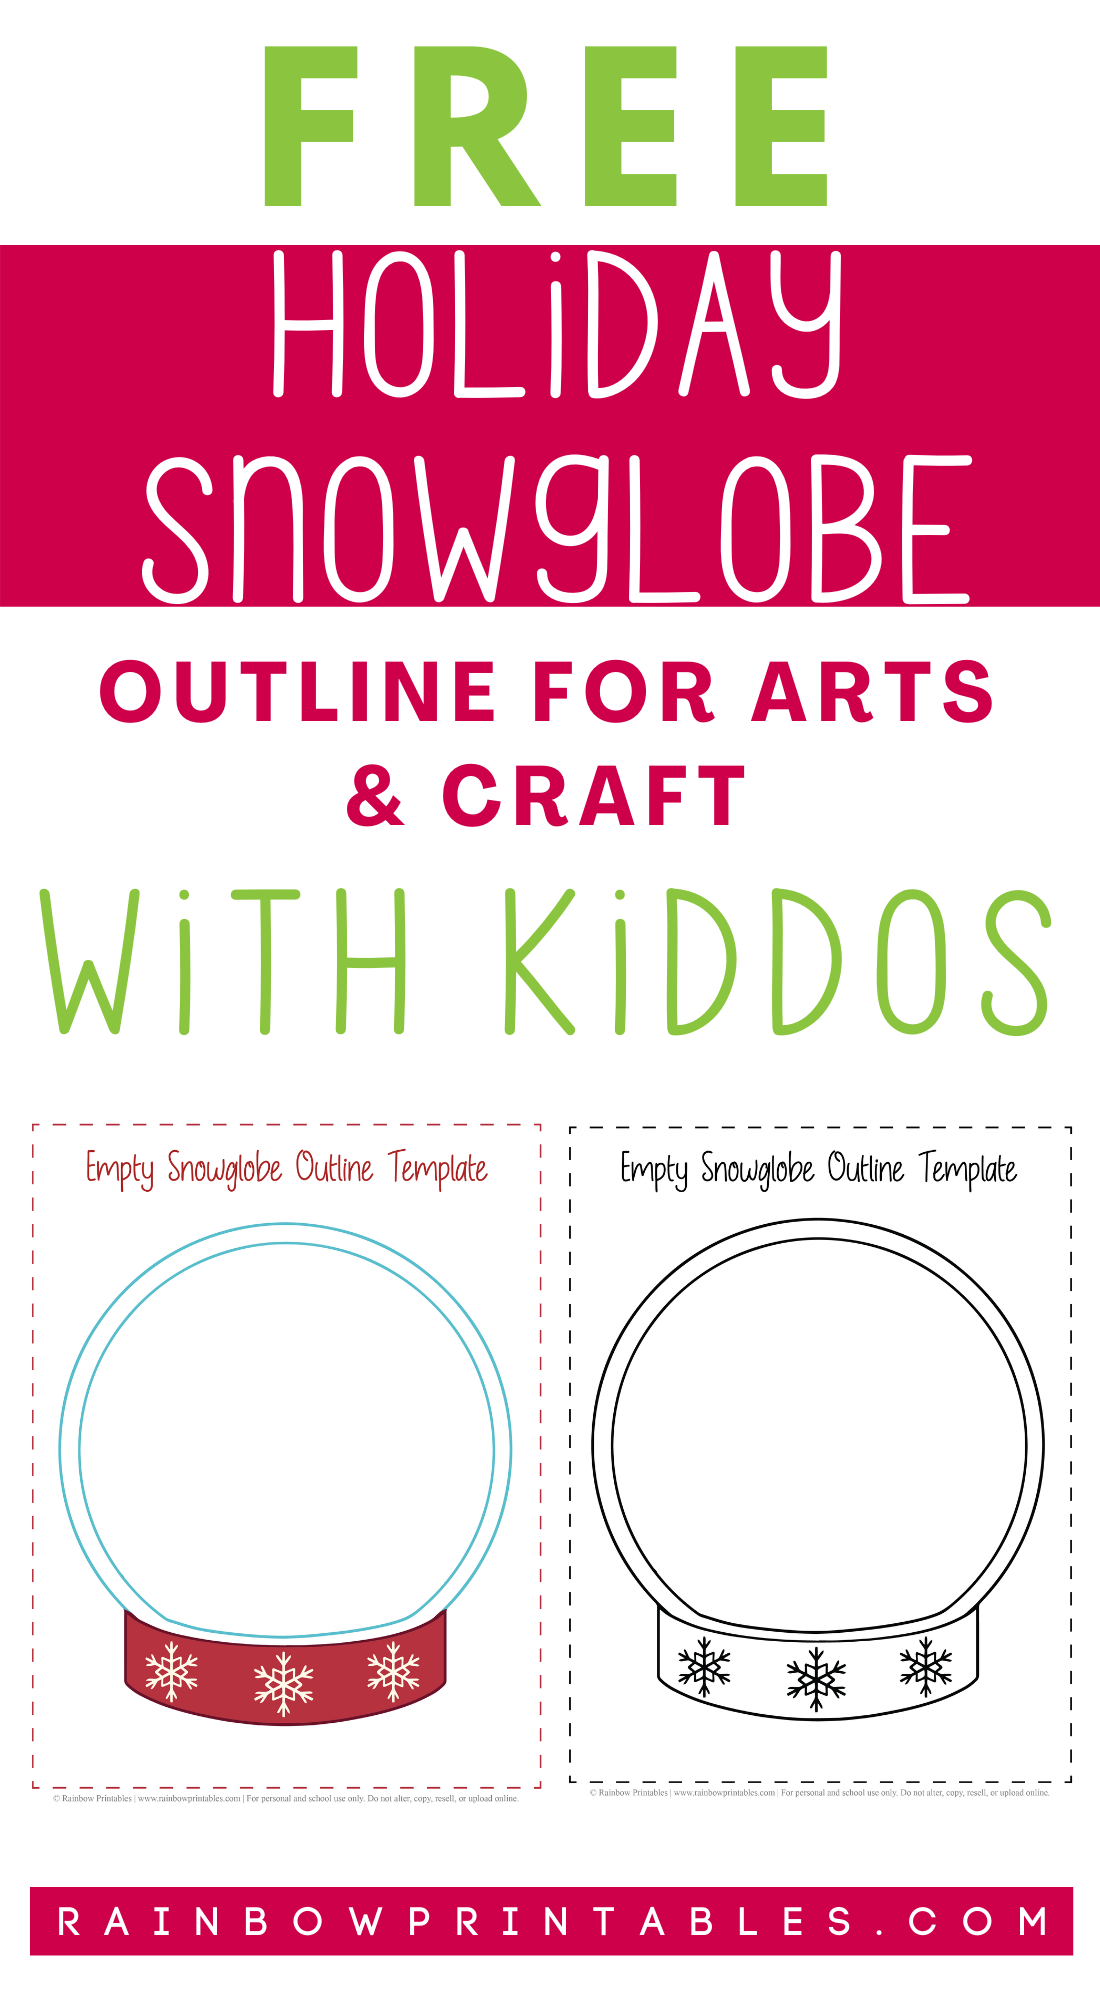 Free Holiday Snowglobe Outline Printable for Arts & Craft With Little Kids